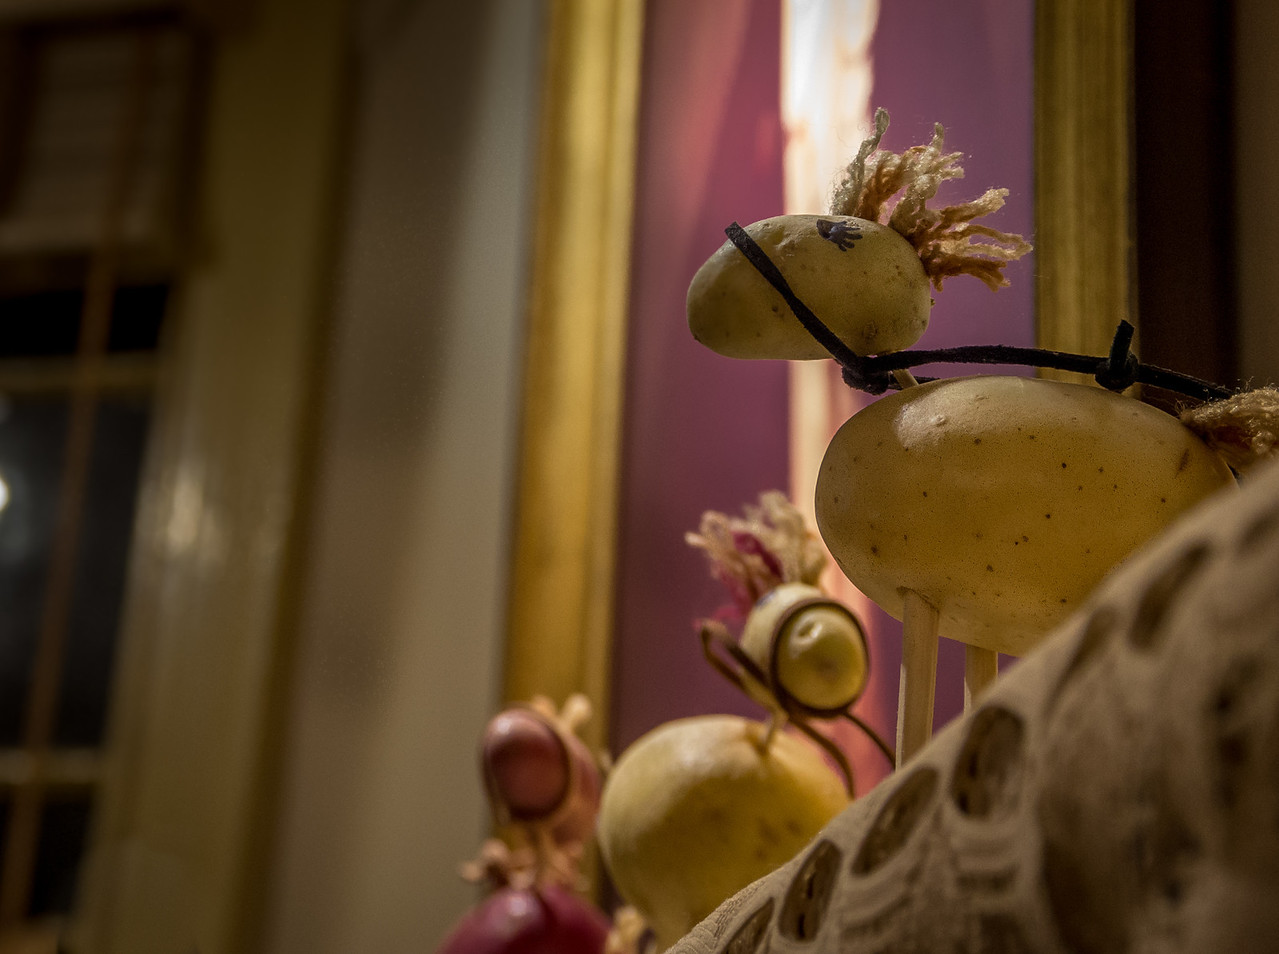 decorations made from potatoes